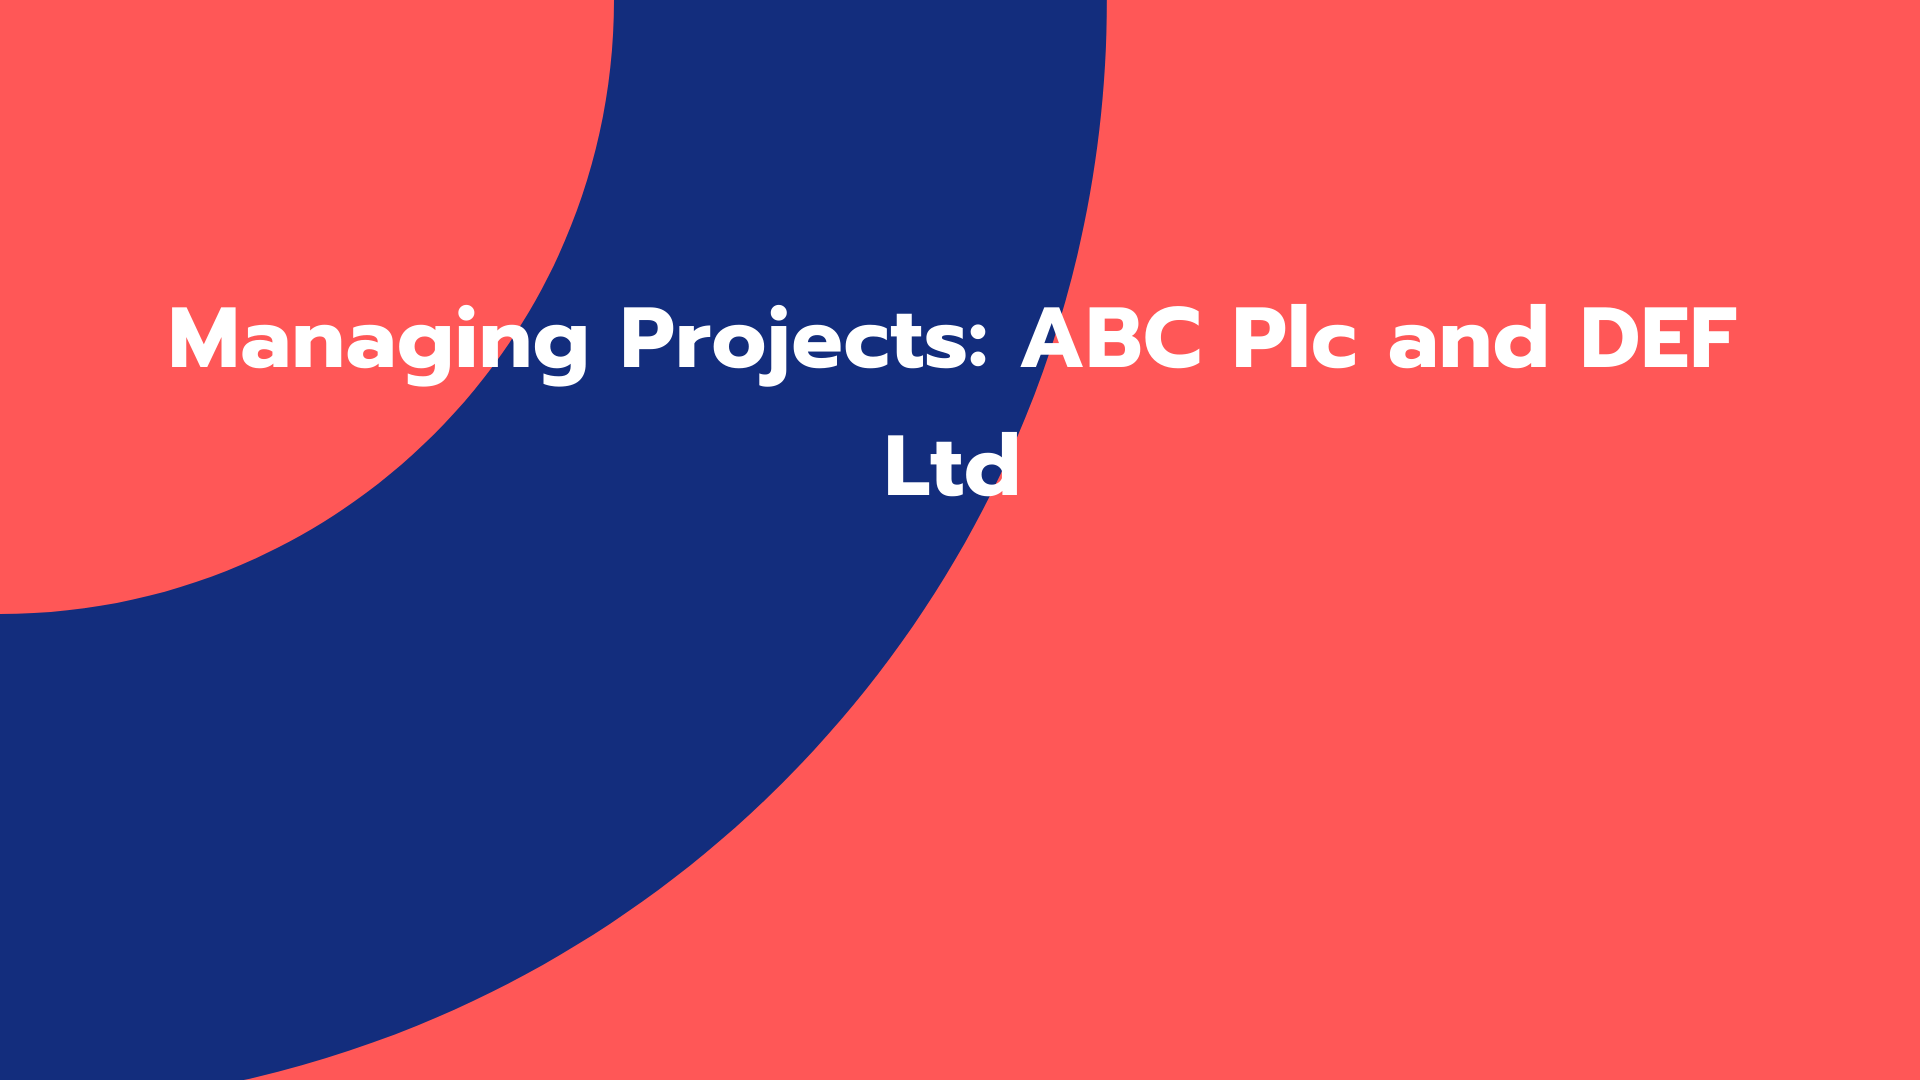 Managing Projects: ABC Plc and DEF Ltd